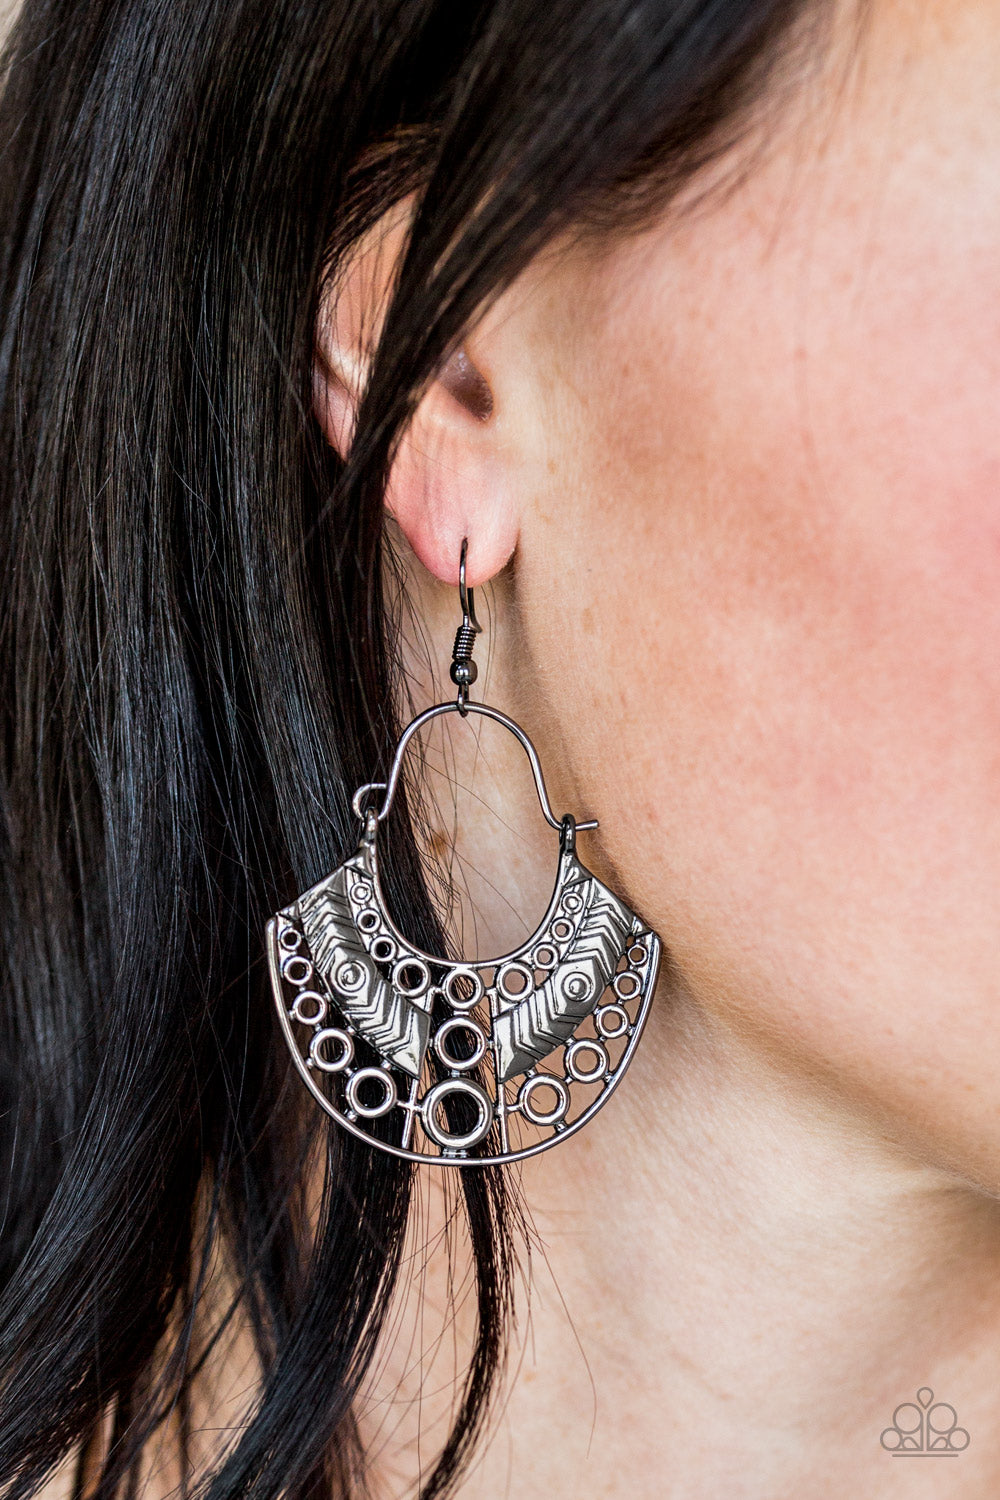 Paparazzi - Indigenous Idol - Black Earrings - Classy Jewels by Linda